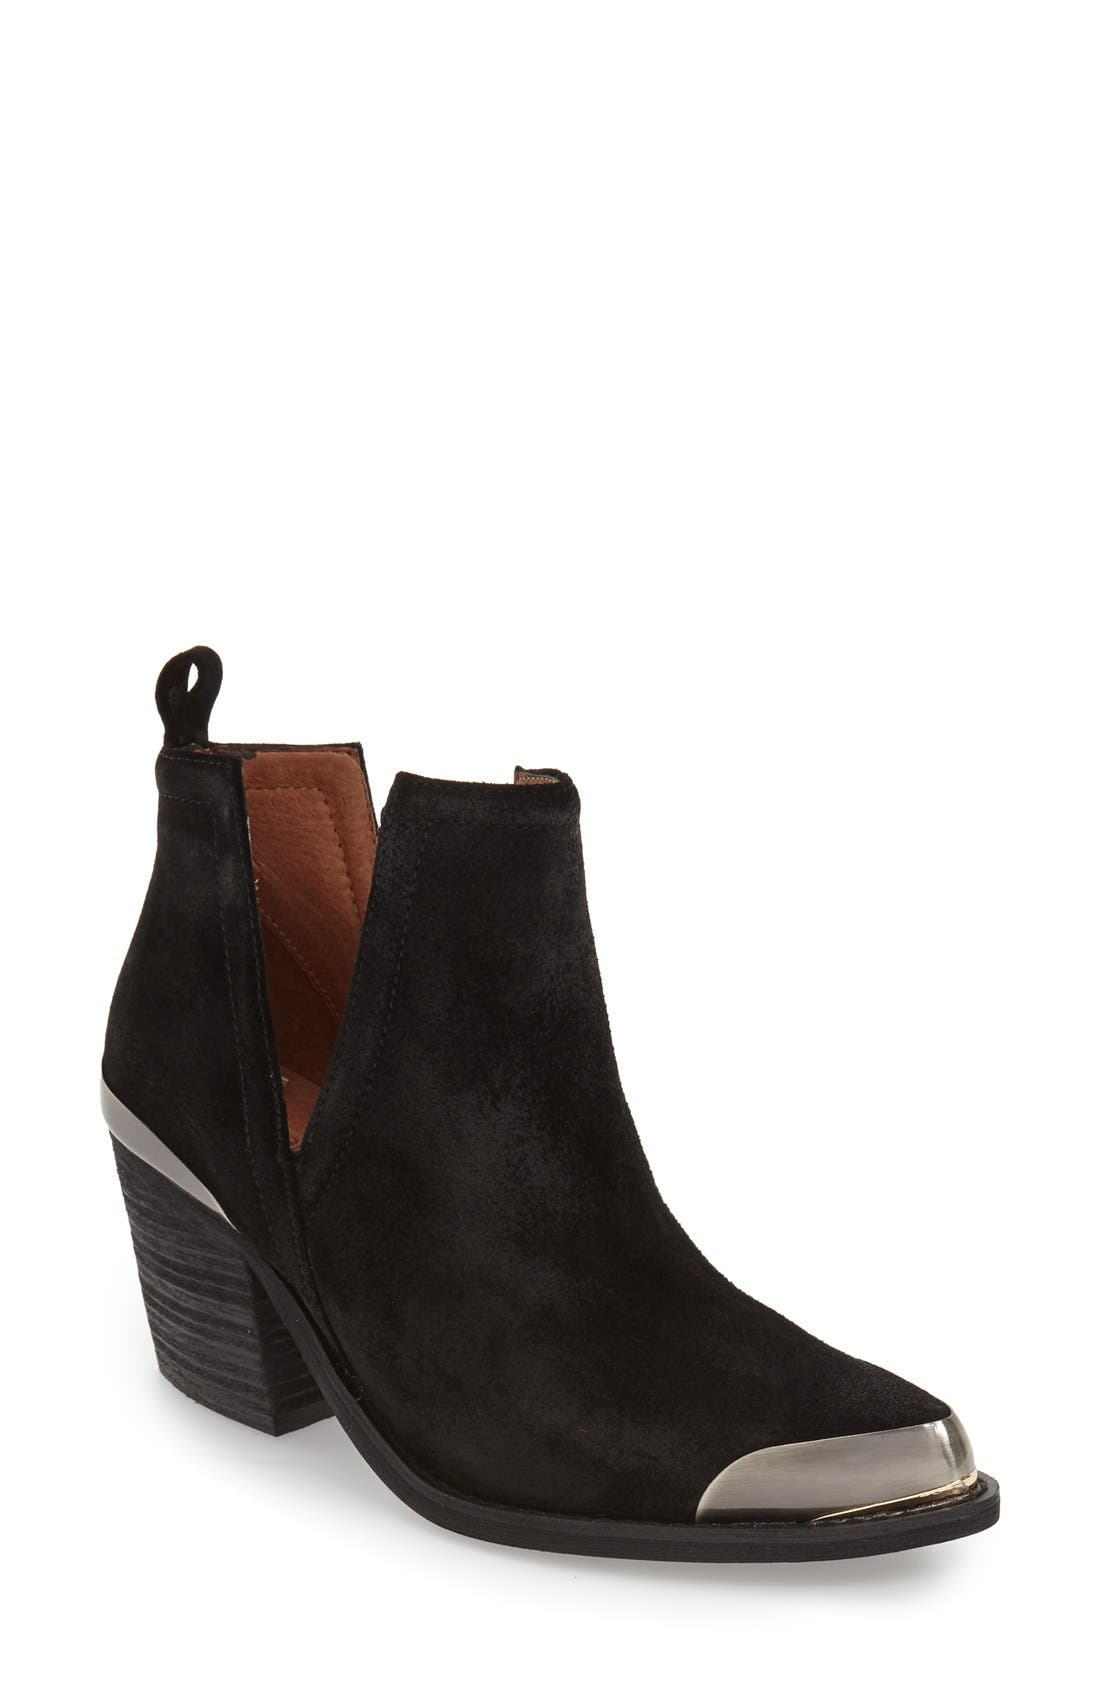 Main Image - Jeffrey Campbell 'Optimum' Split Shaft Bootie (Women)